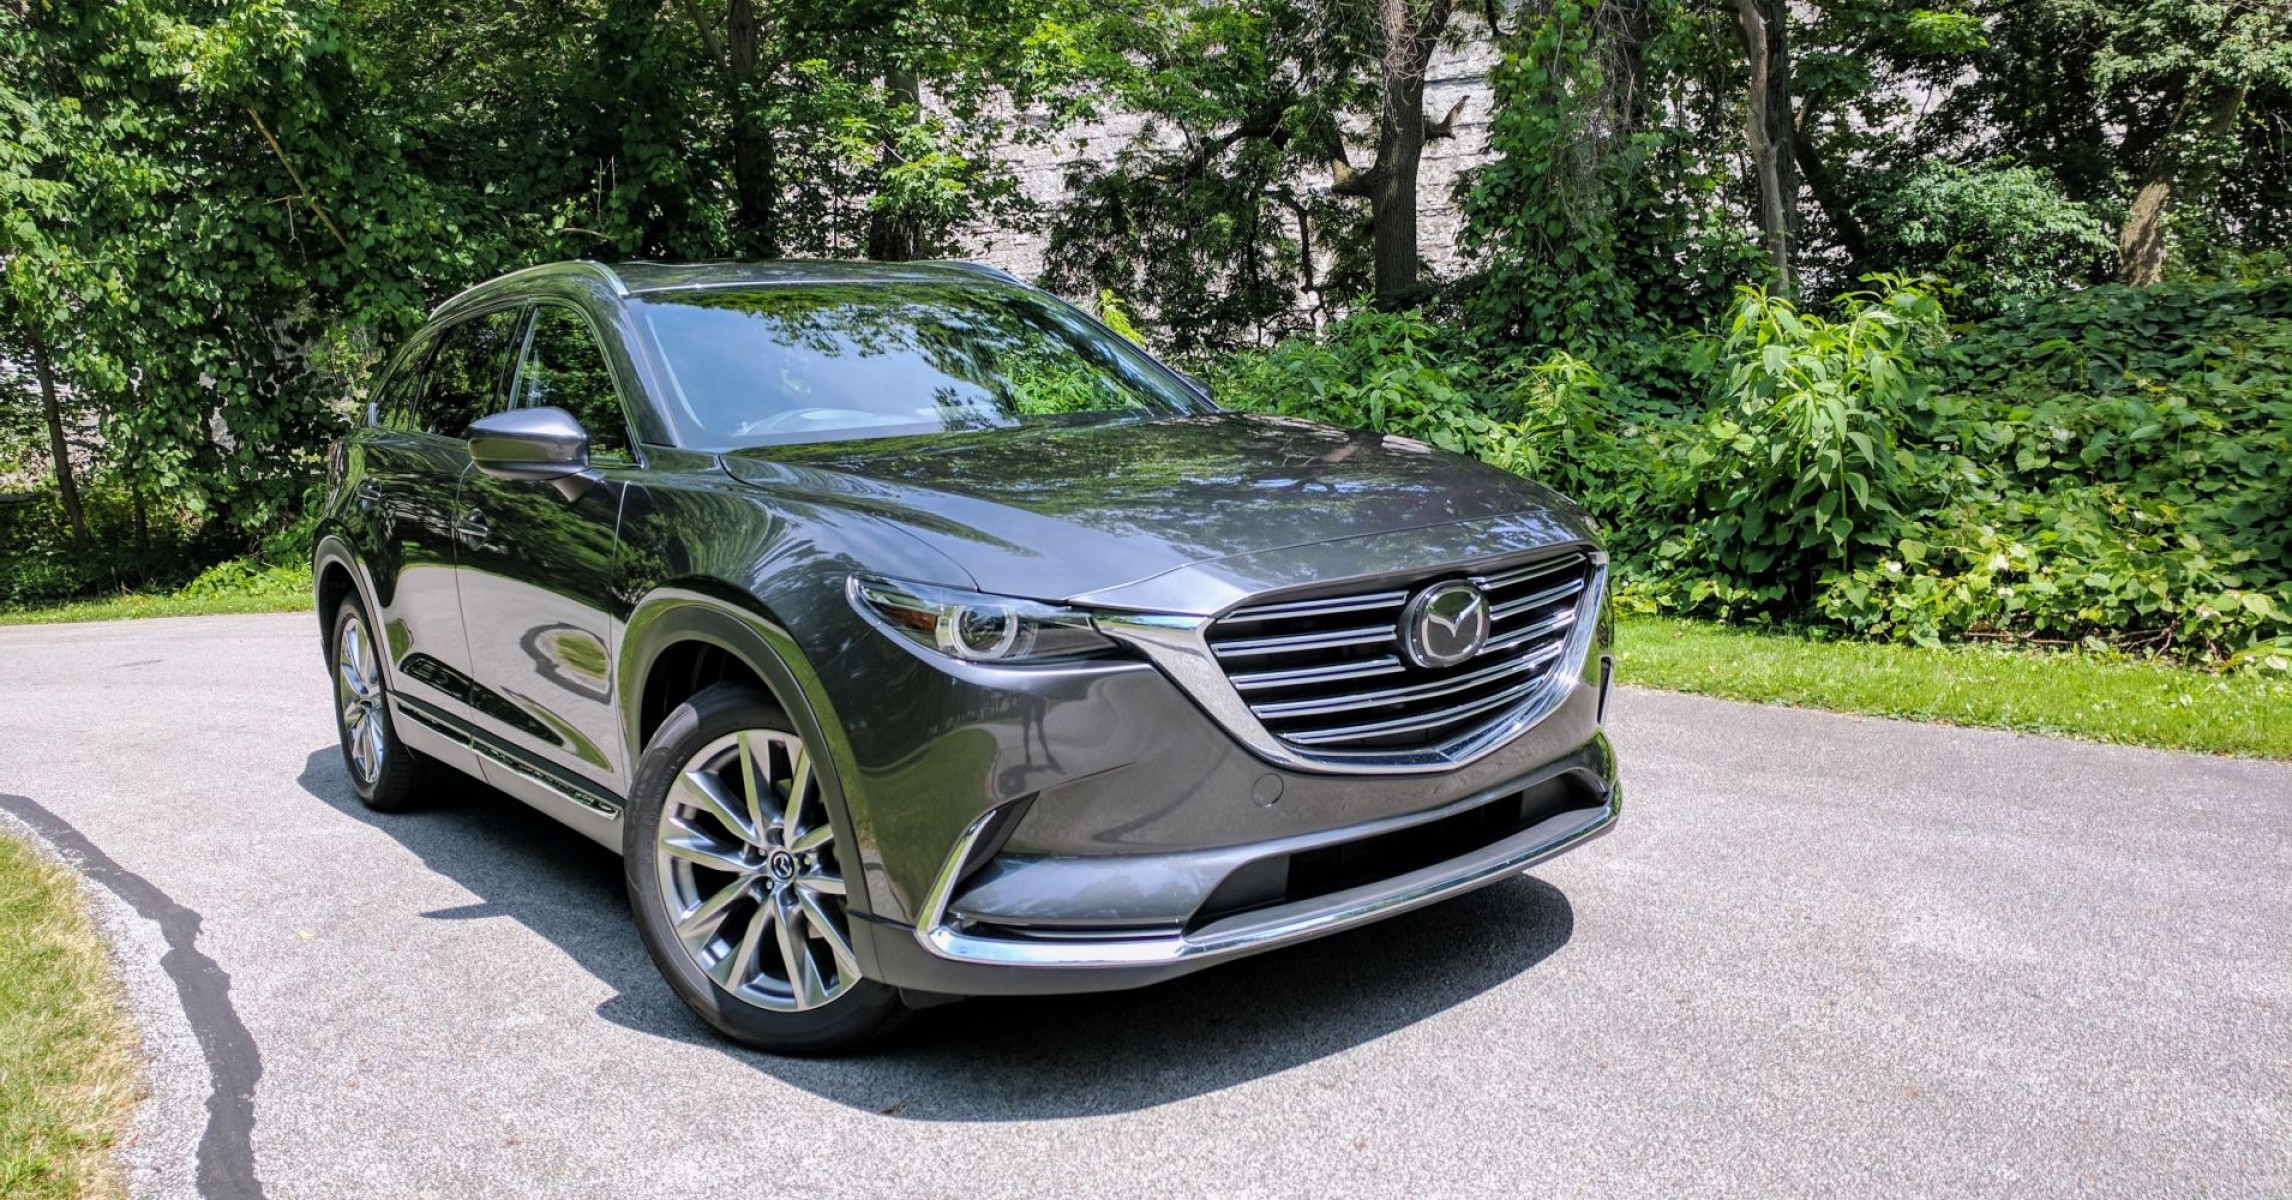 SUV Car Elevation Vector: Mazda Cx Review Too Many Sacrifices In This Three Row Suv